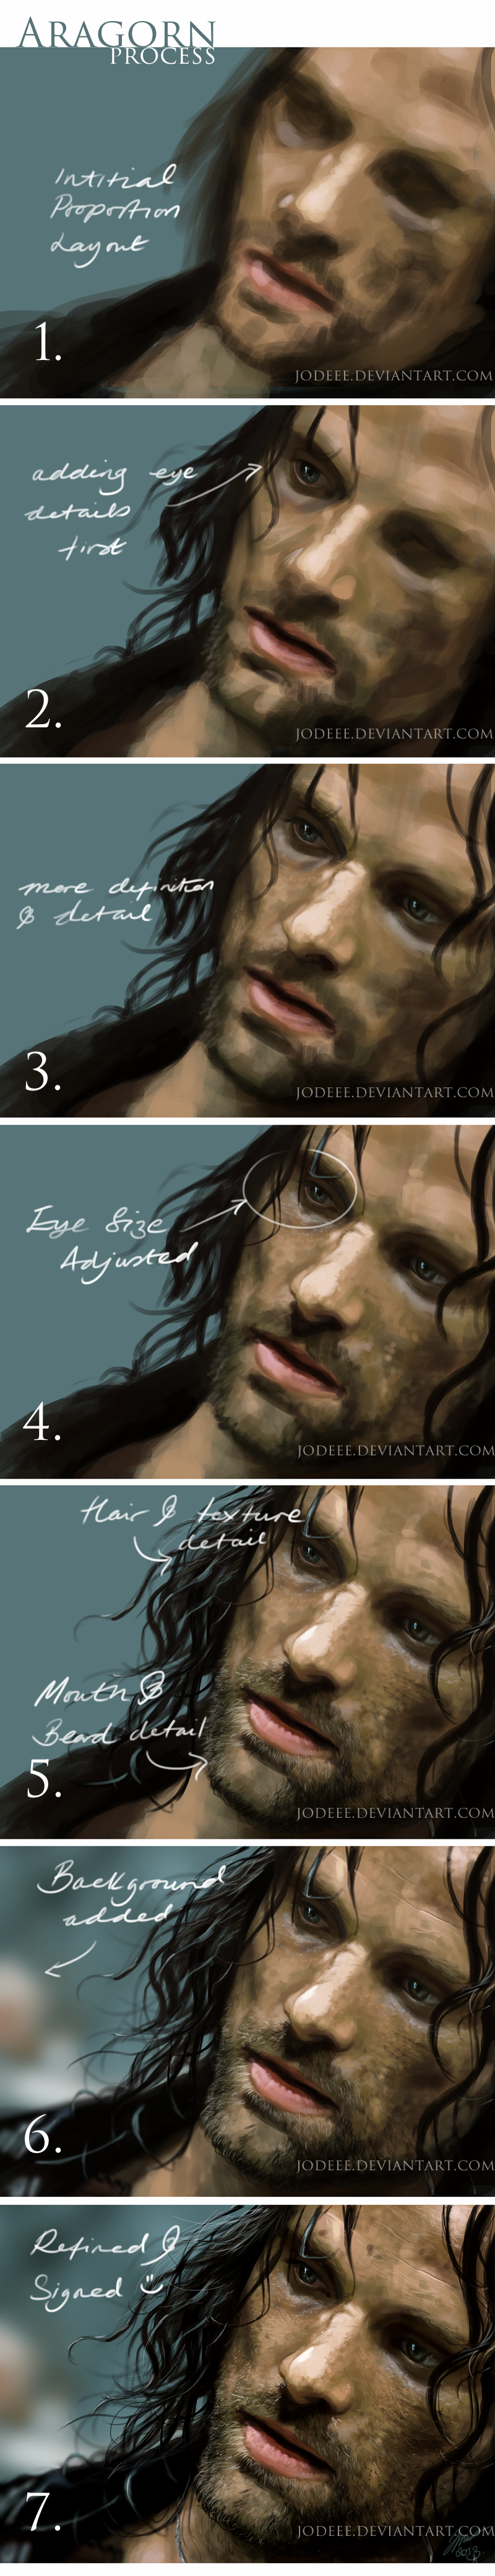 Aragorn painting progress by jodeee